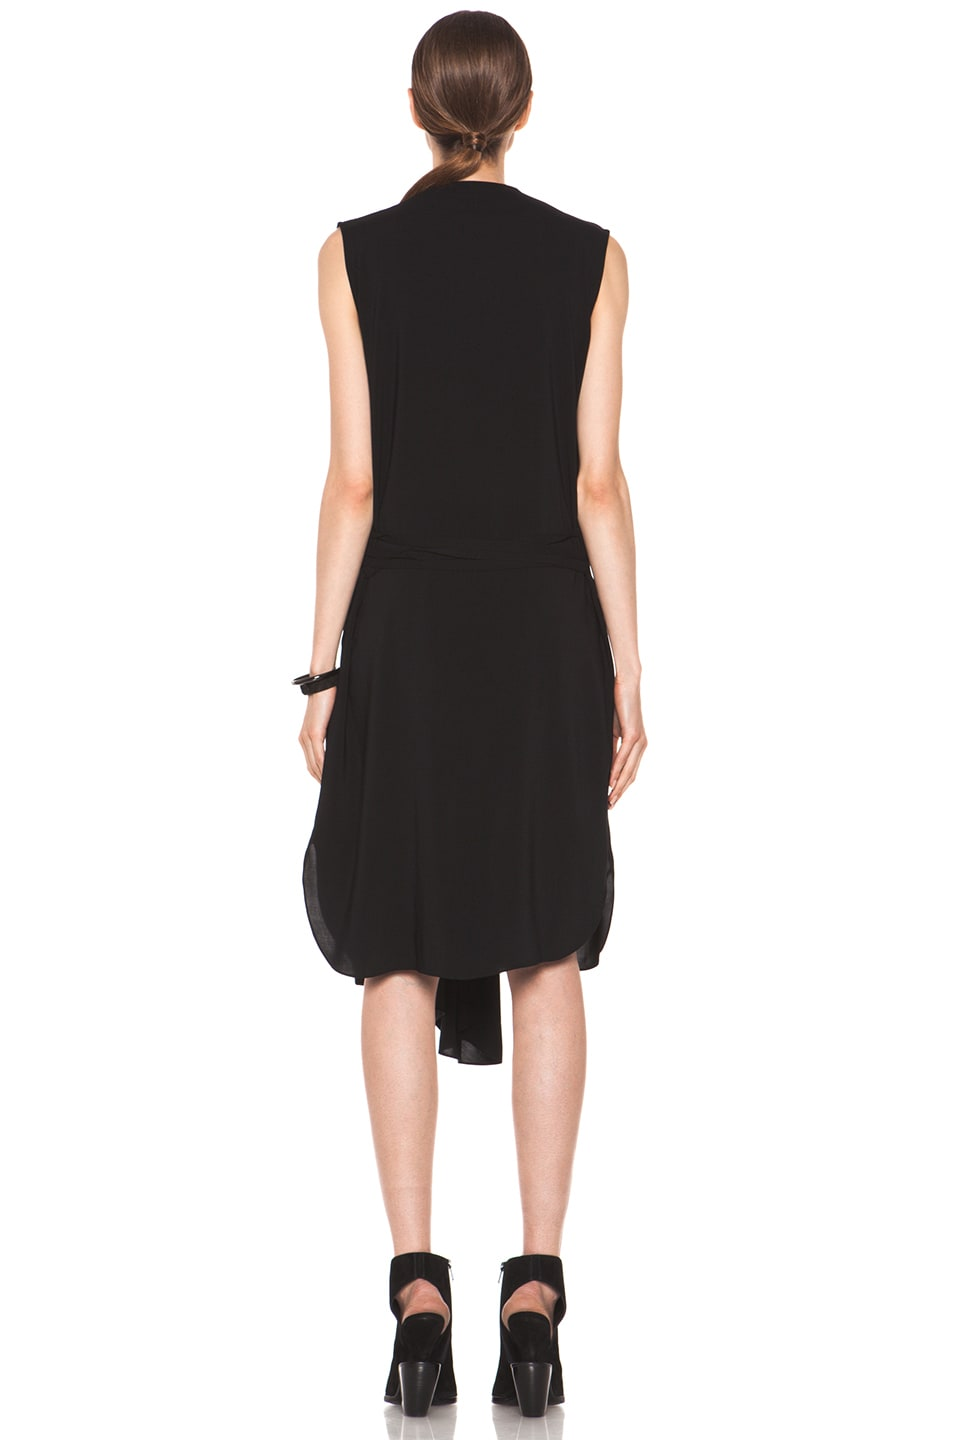 Image 4 of Tess Giberson Asymmetric Shirt Dress in Black